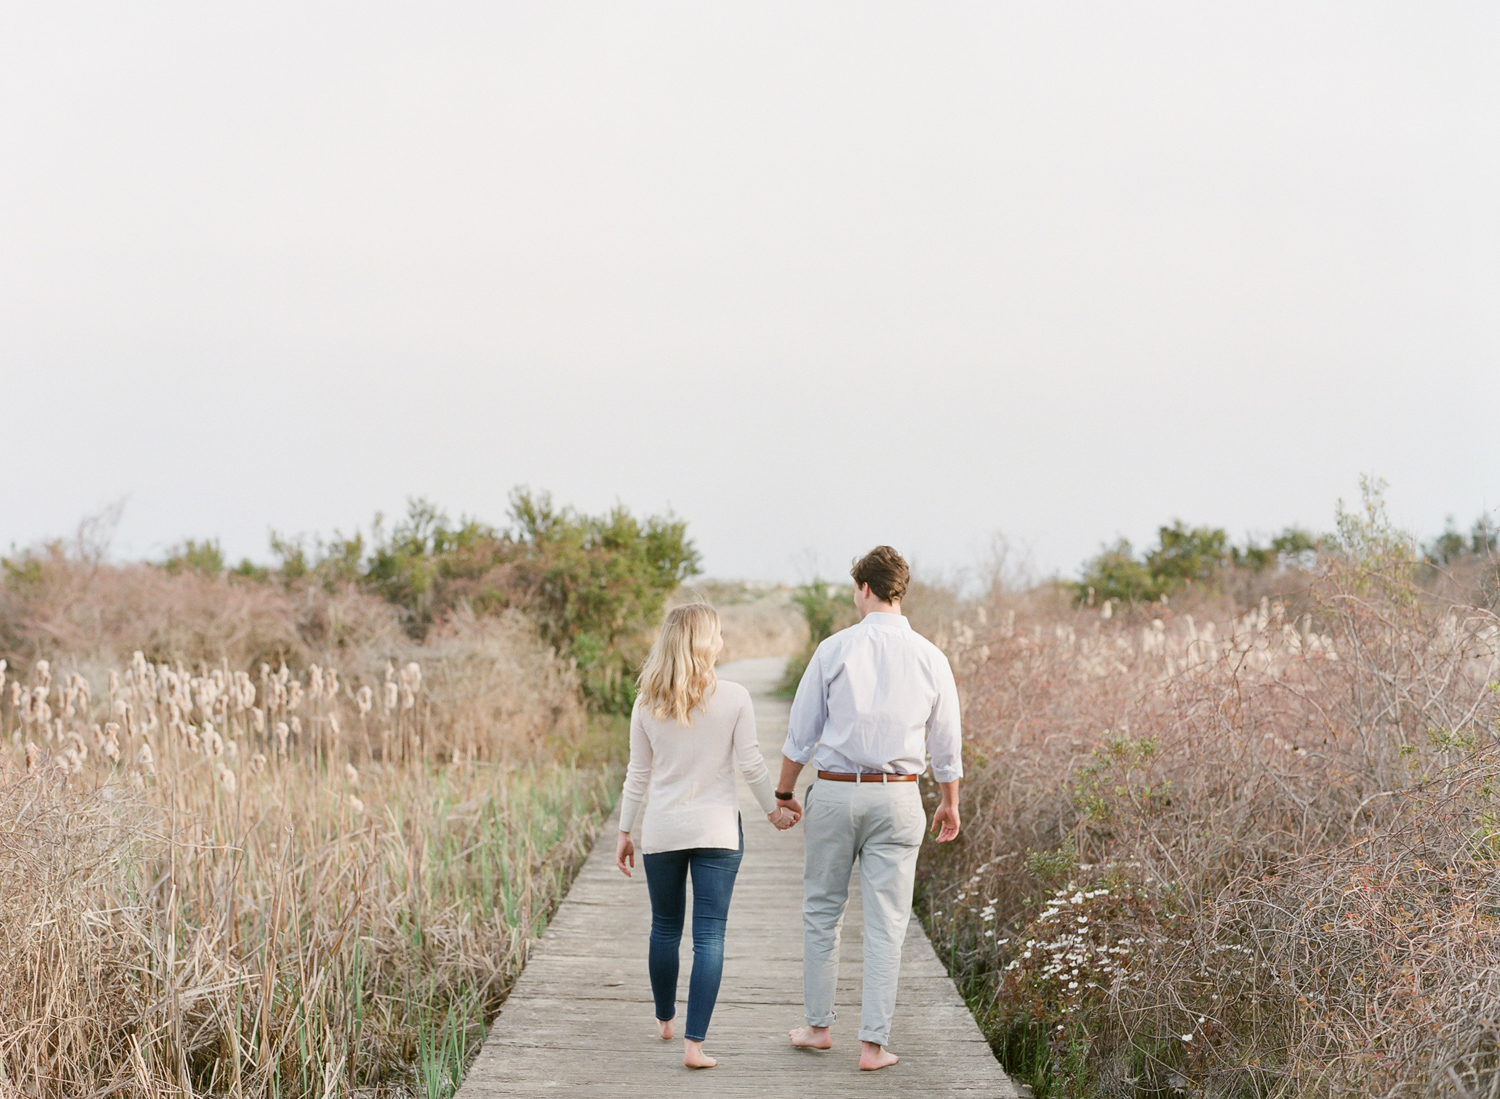 Charleston-Engagement-Session-Photos-73.jpg